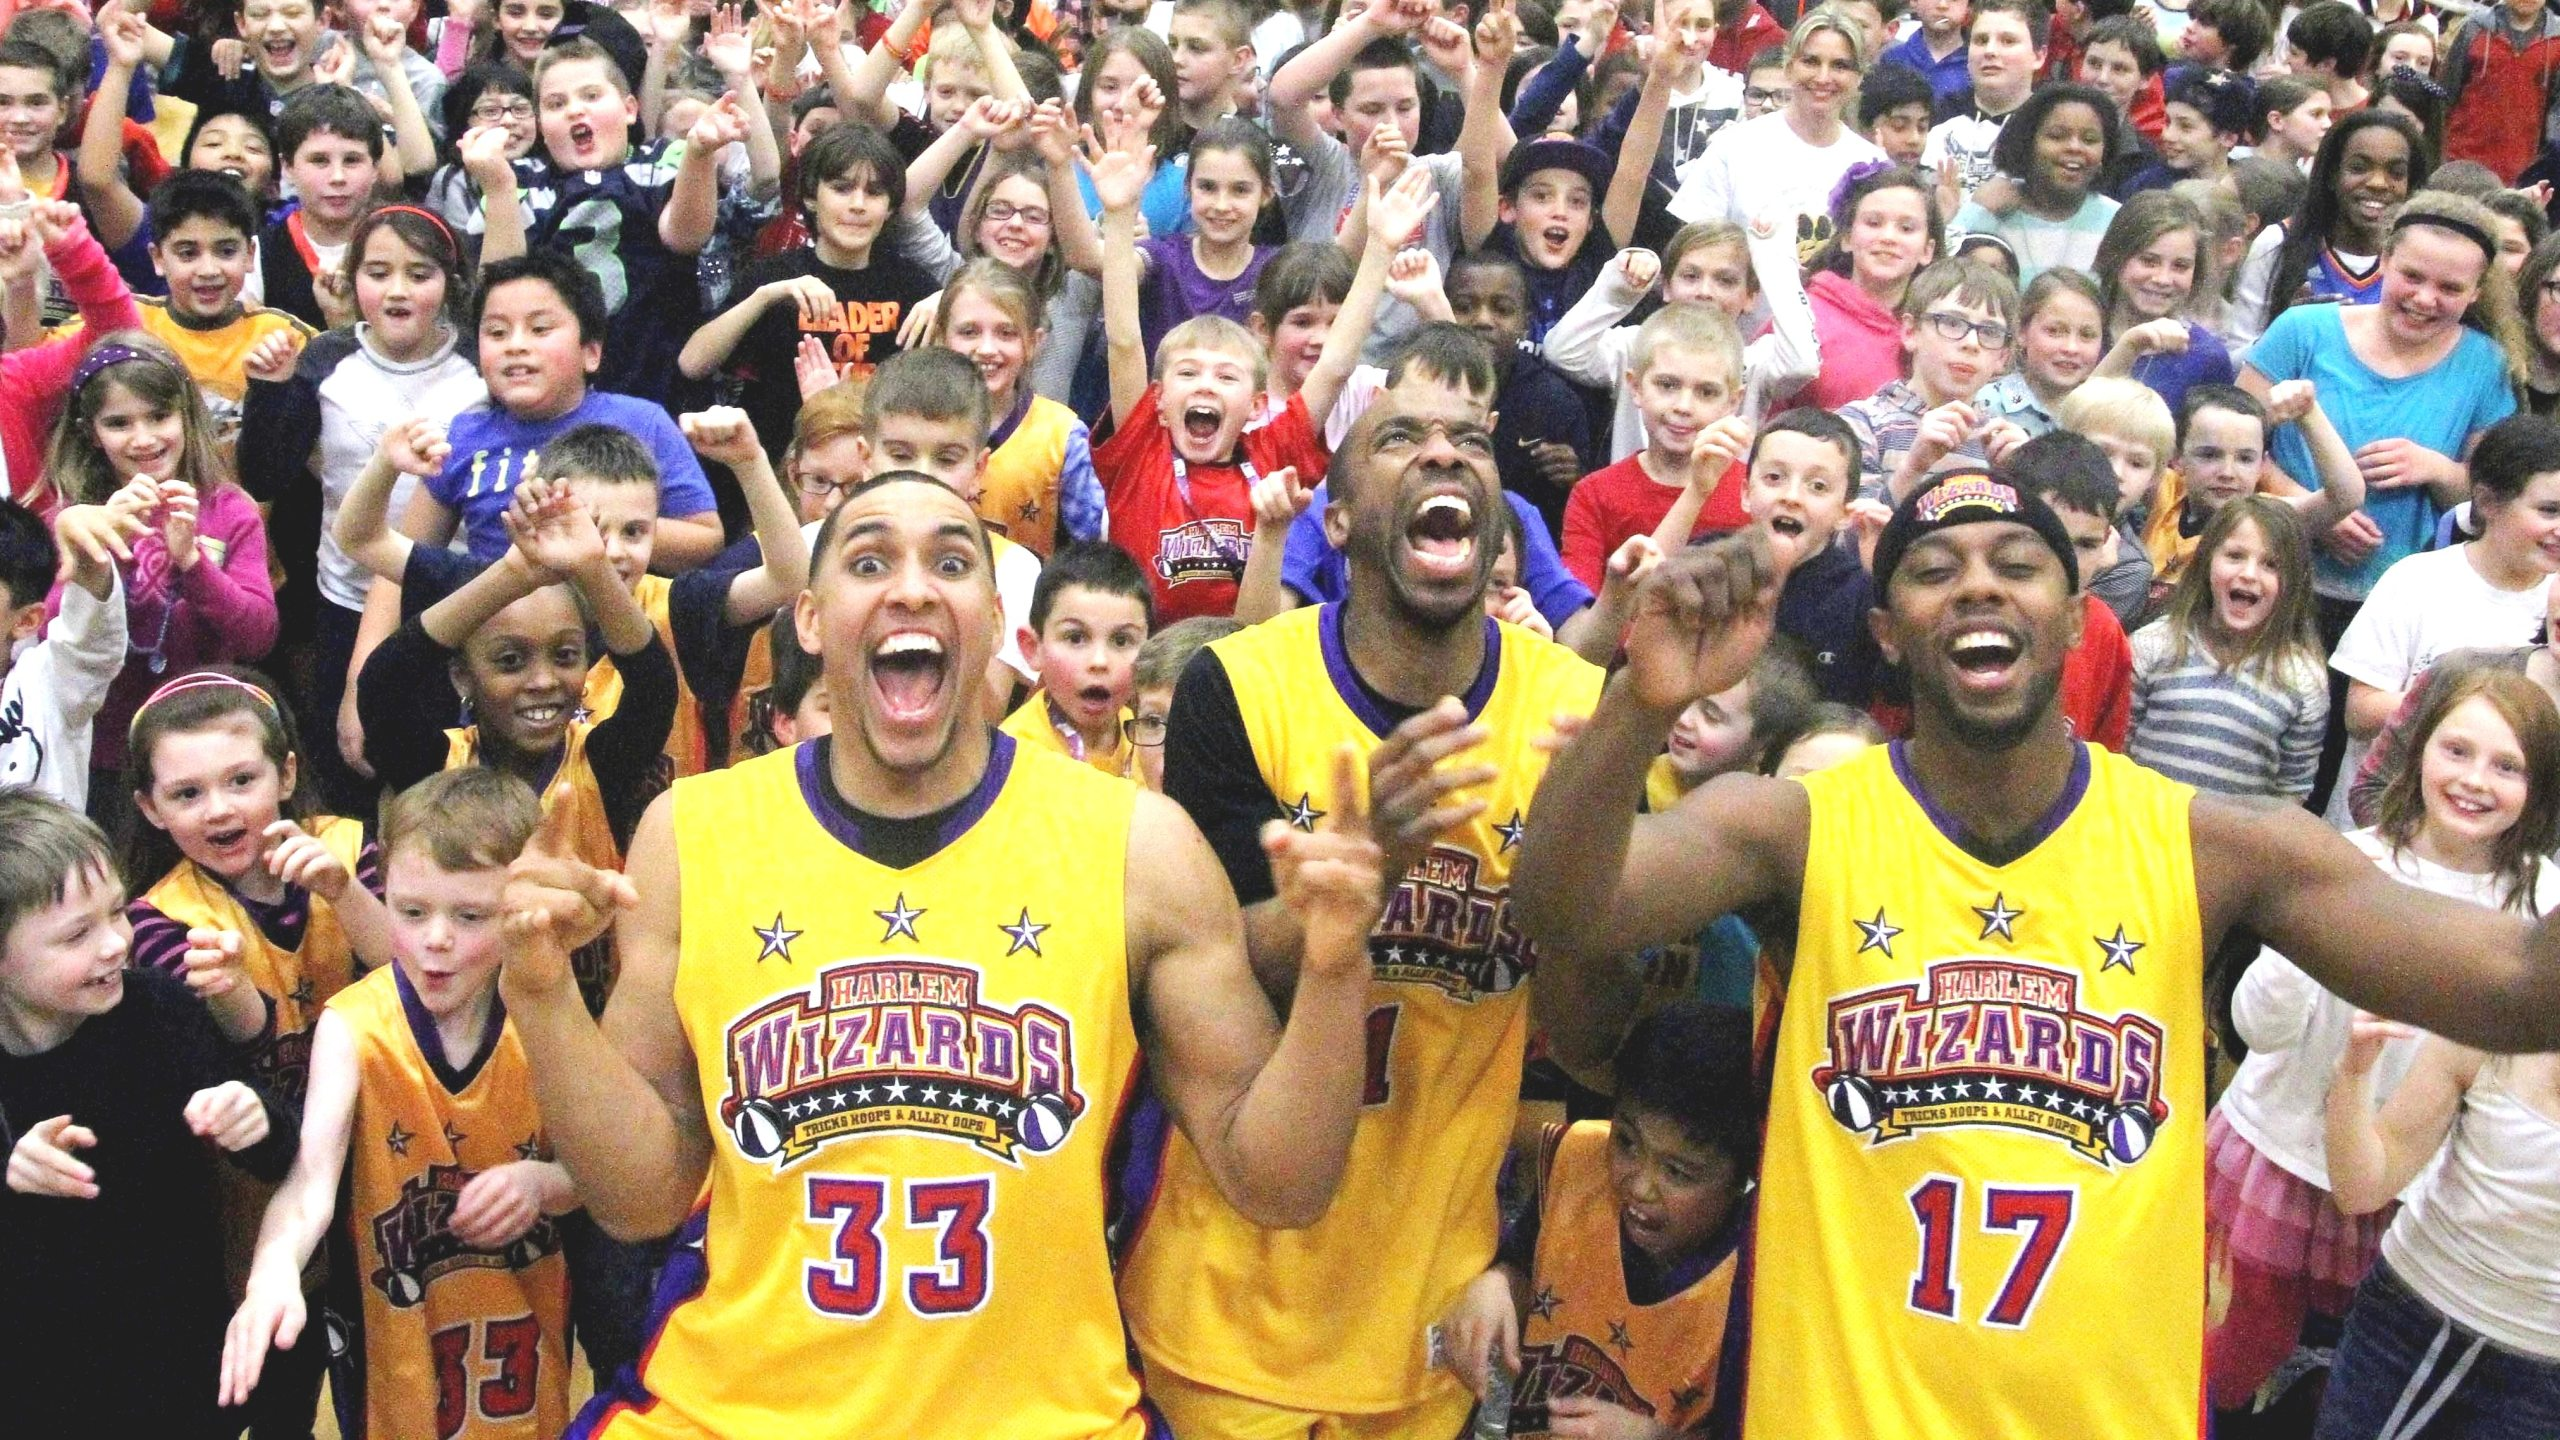 harlem wizards_519031